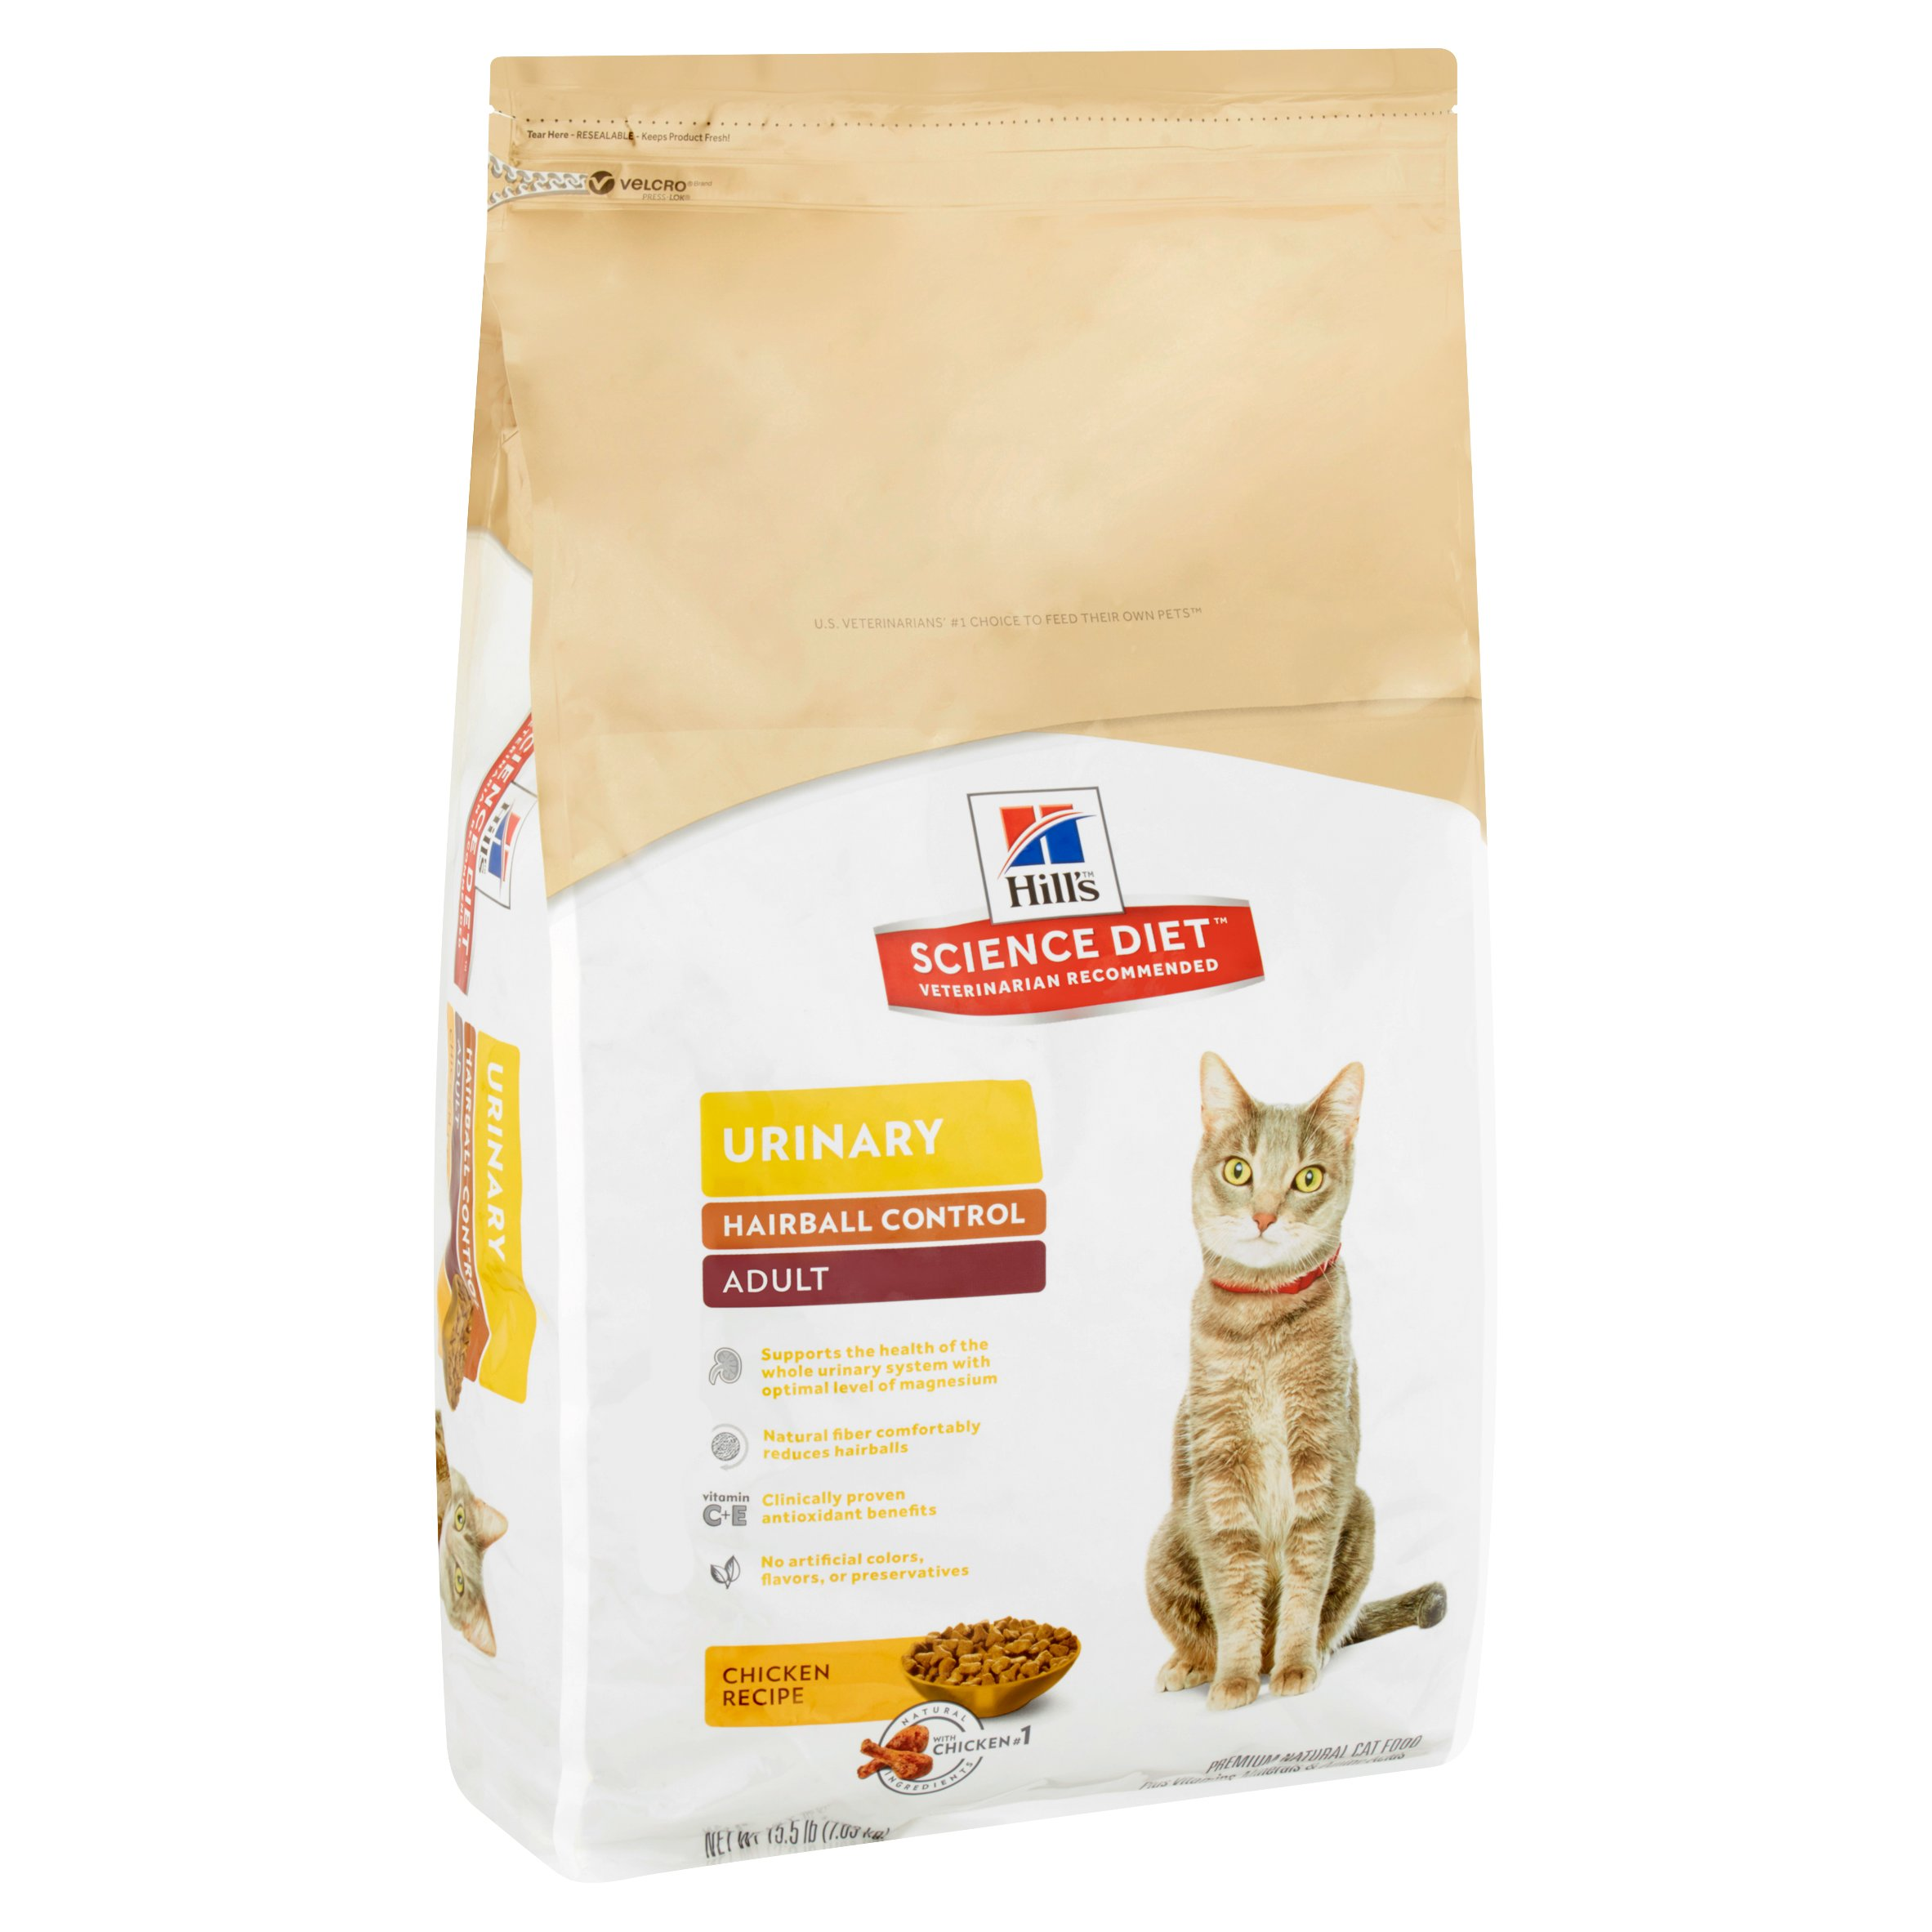 Hill s Science Diet Adult Urinary Hairball Control Chicken Recipe